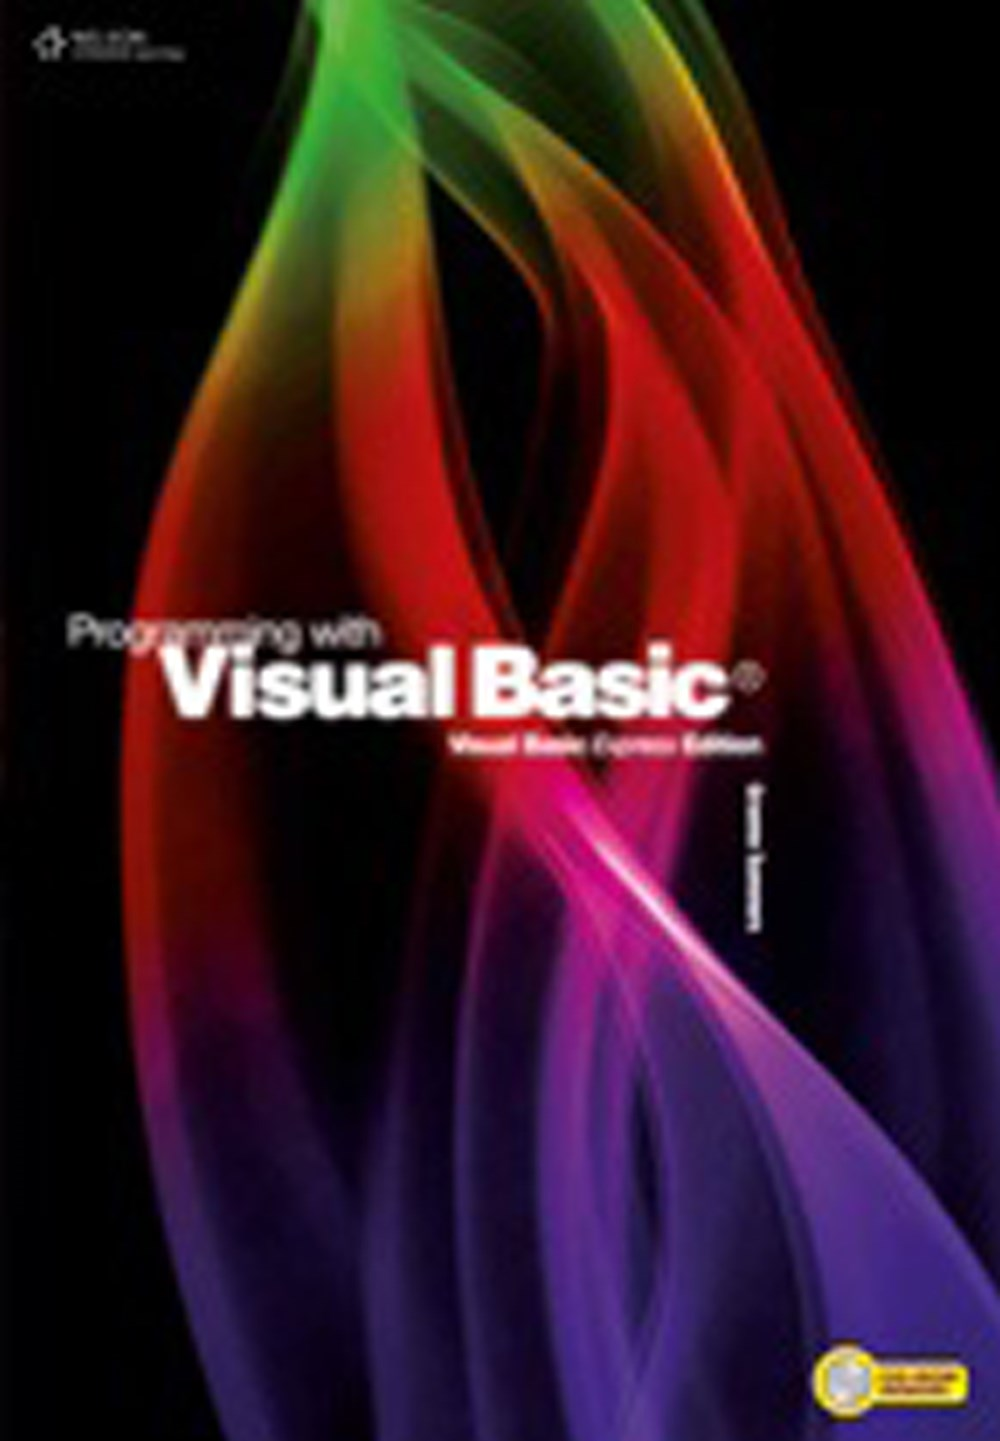 Programming with Visual Basic Express